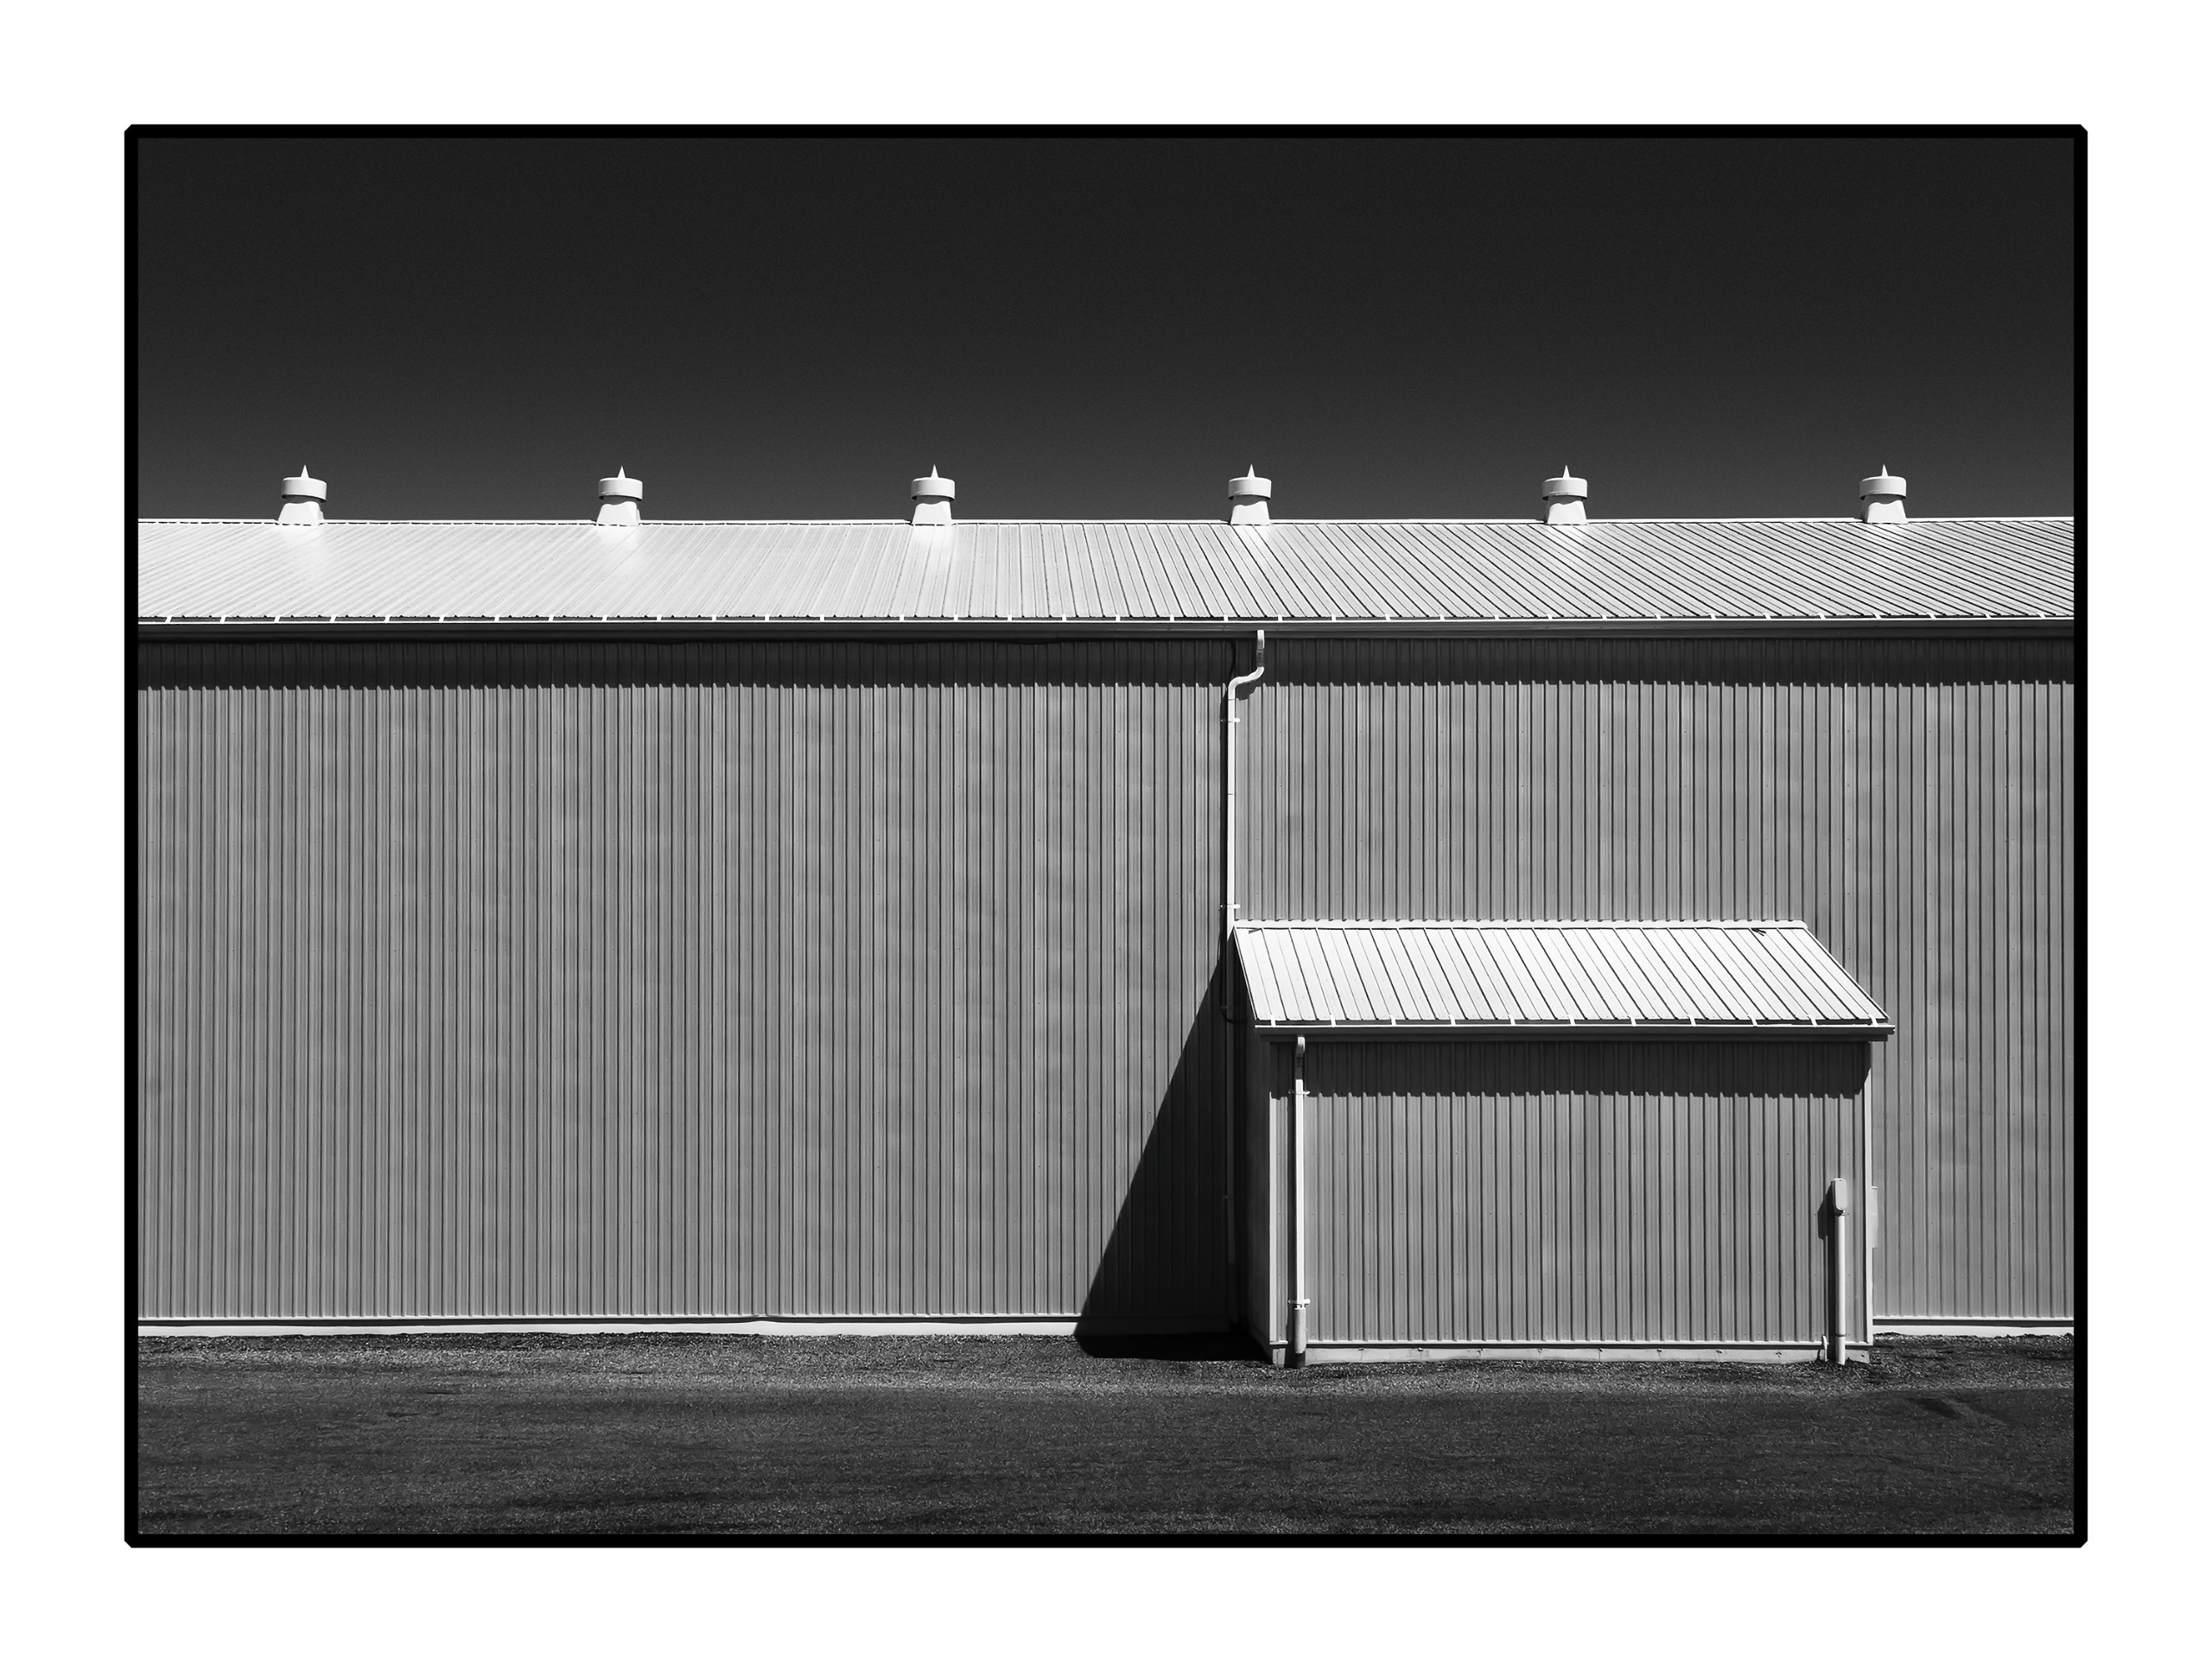 Holland Marsh Storage Shed 60 y - patrickchuprina | ello